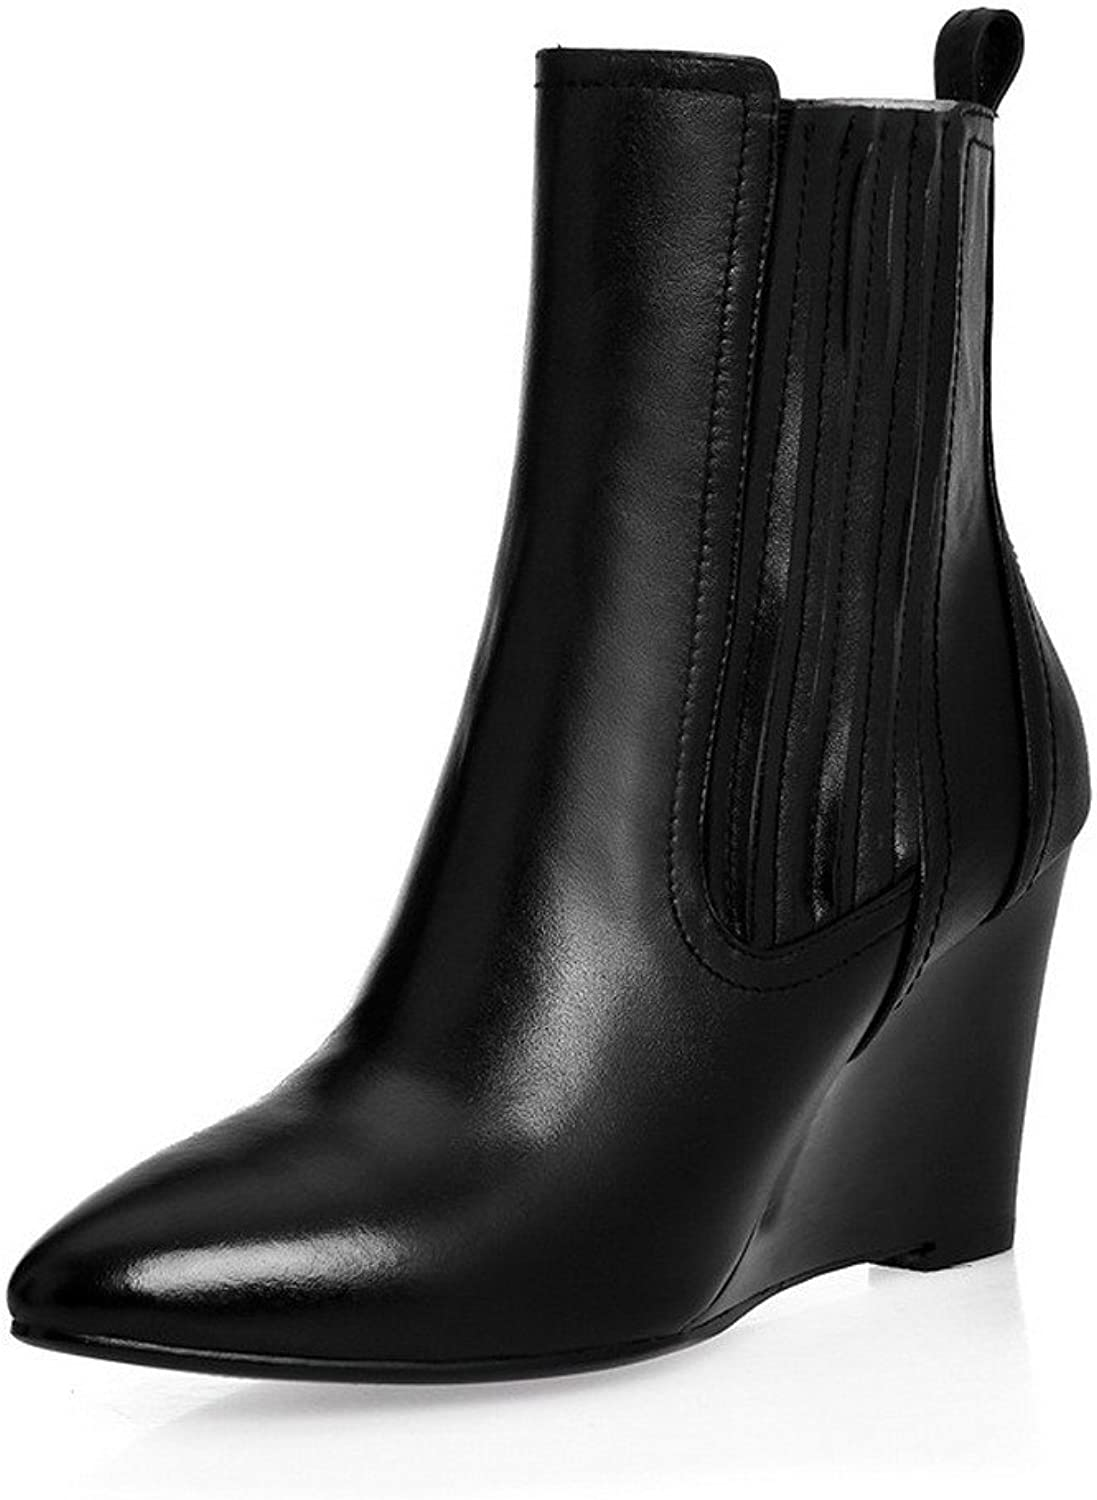 AmoonyFashion Women's Pointed-Toe Closed-Toe High-Heels Boots with British Style